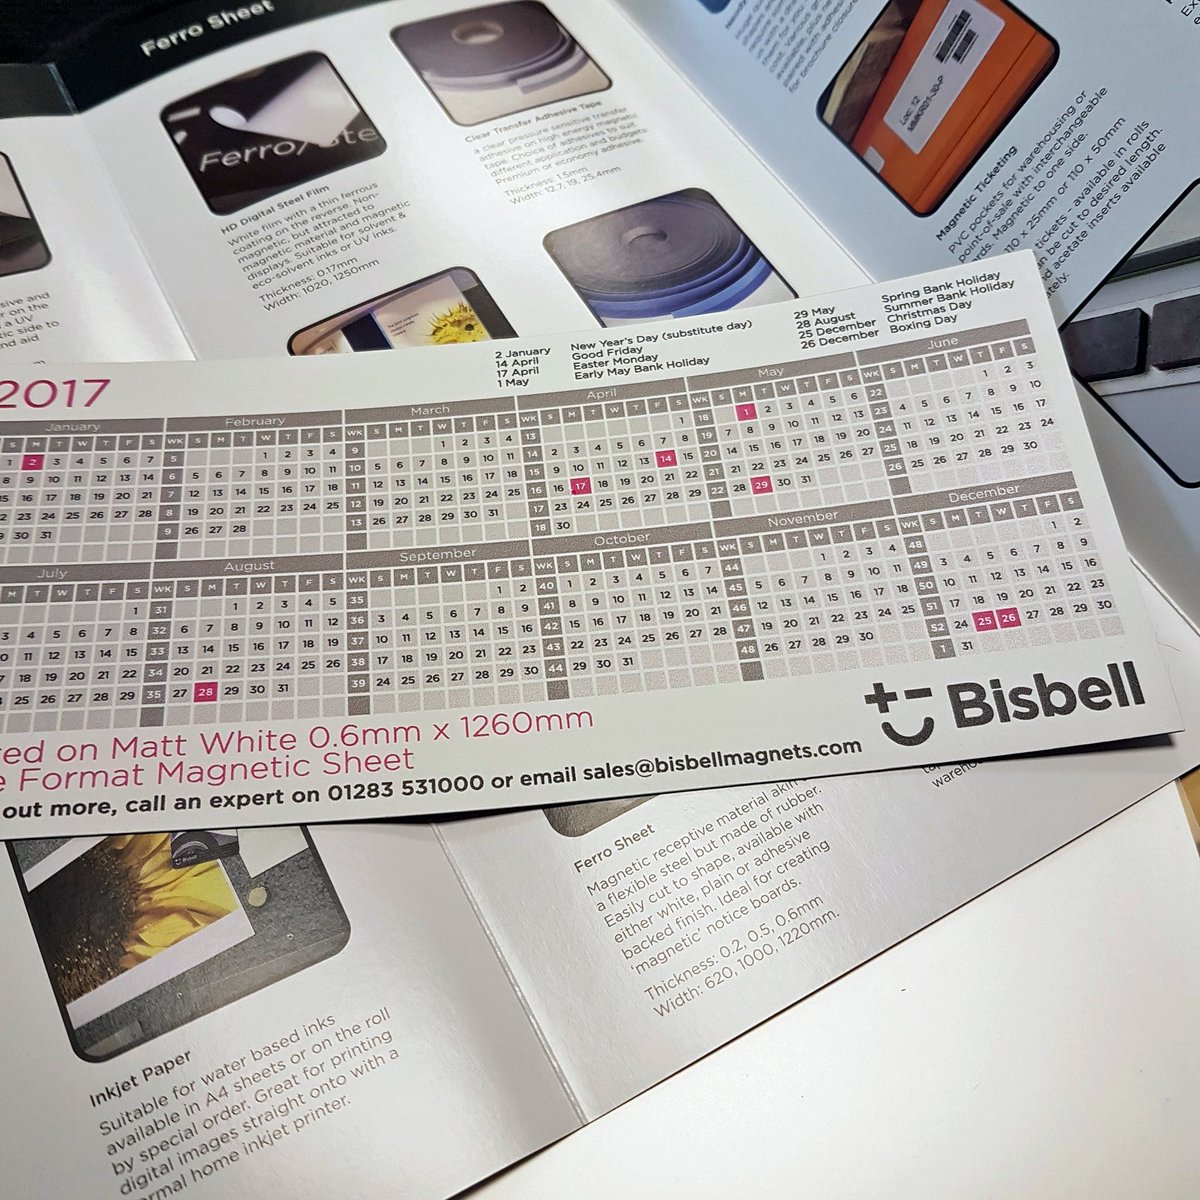 Thinking of using #Magnetic Material? Ring up for a free #Sample today on 01283 531000 or send a quick DM <br>http://pic.twitter.com/rnwAHTY8rC